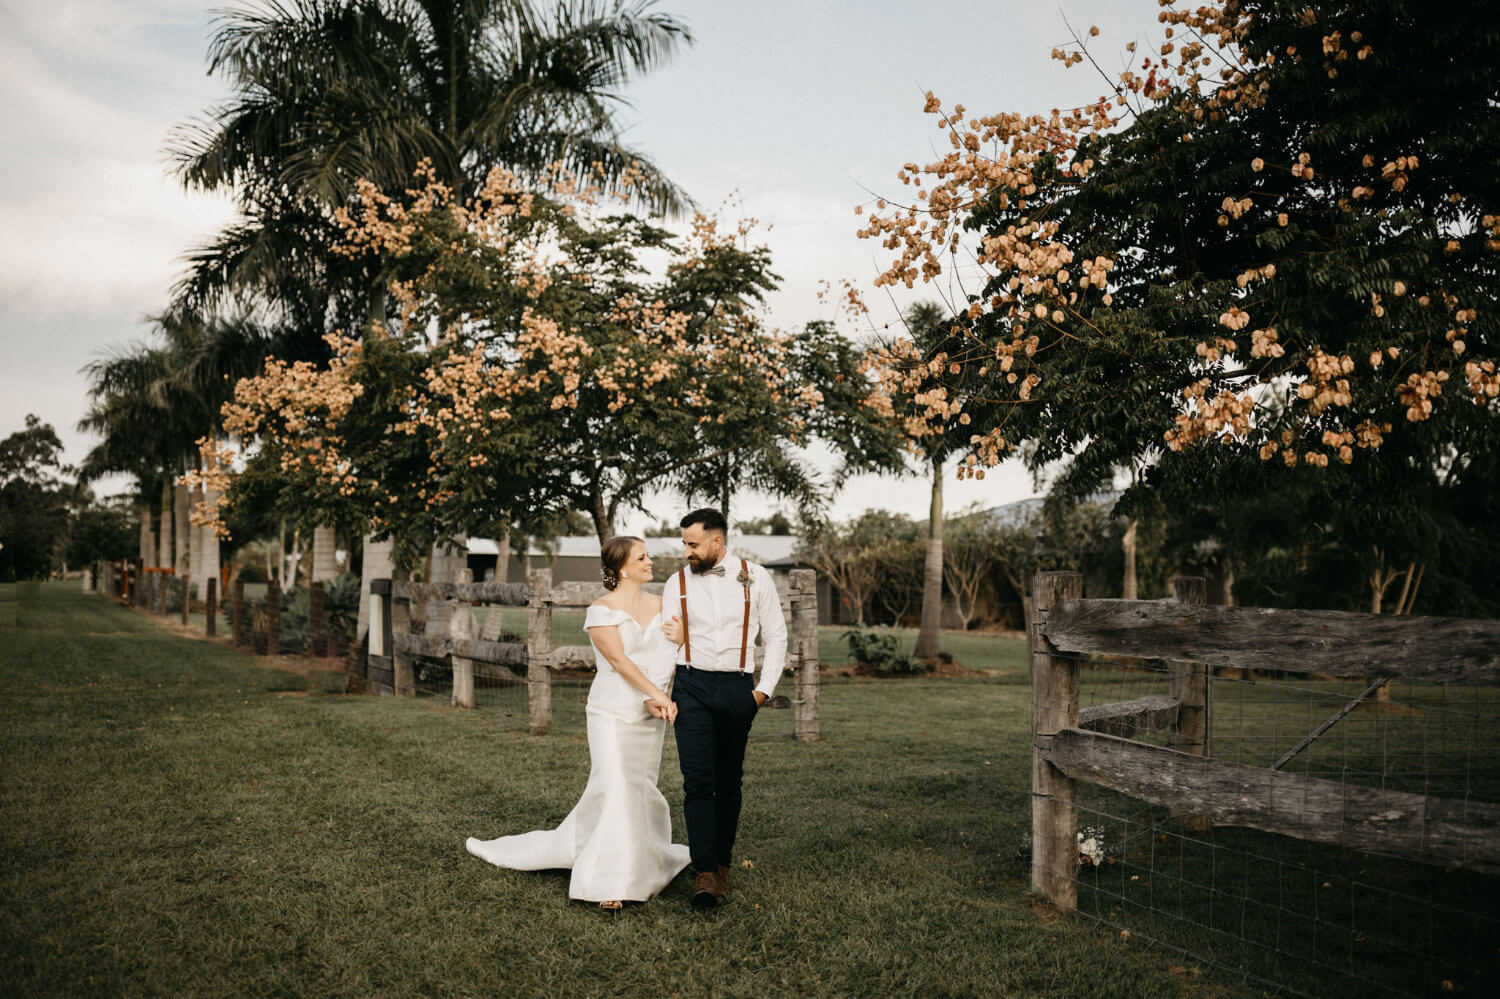 Chic Wedding Planners Toowoomba Brisbane Rawn and Pallow Photography Warrior Rose Events